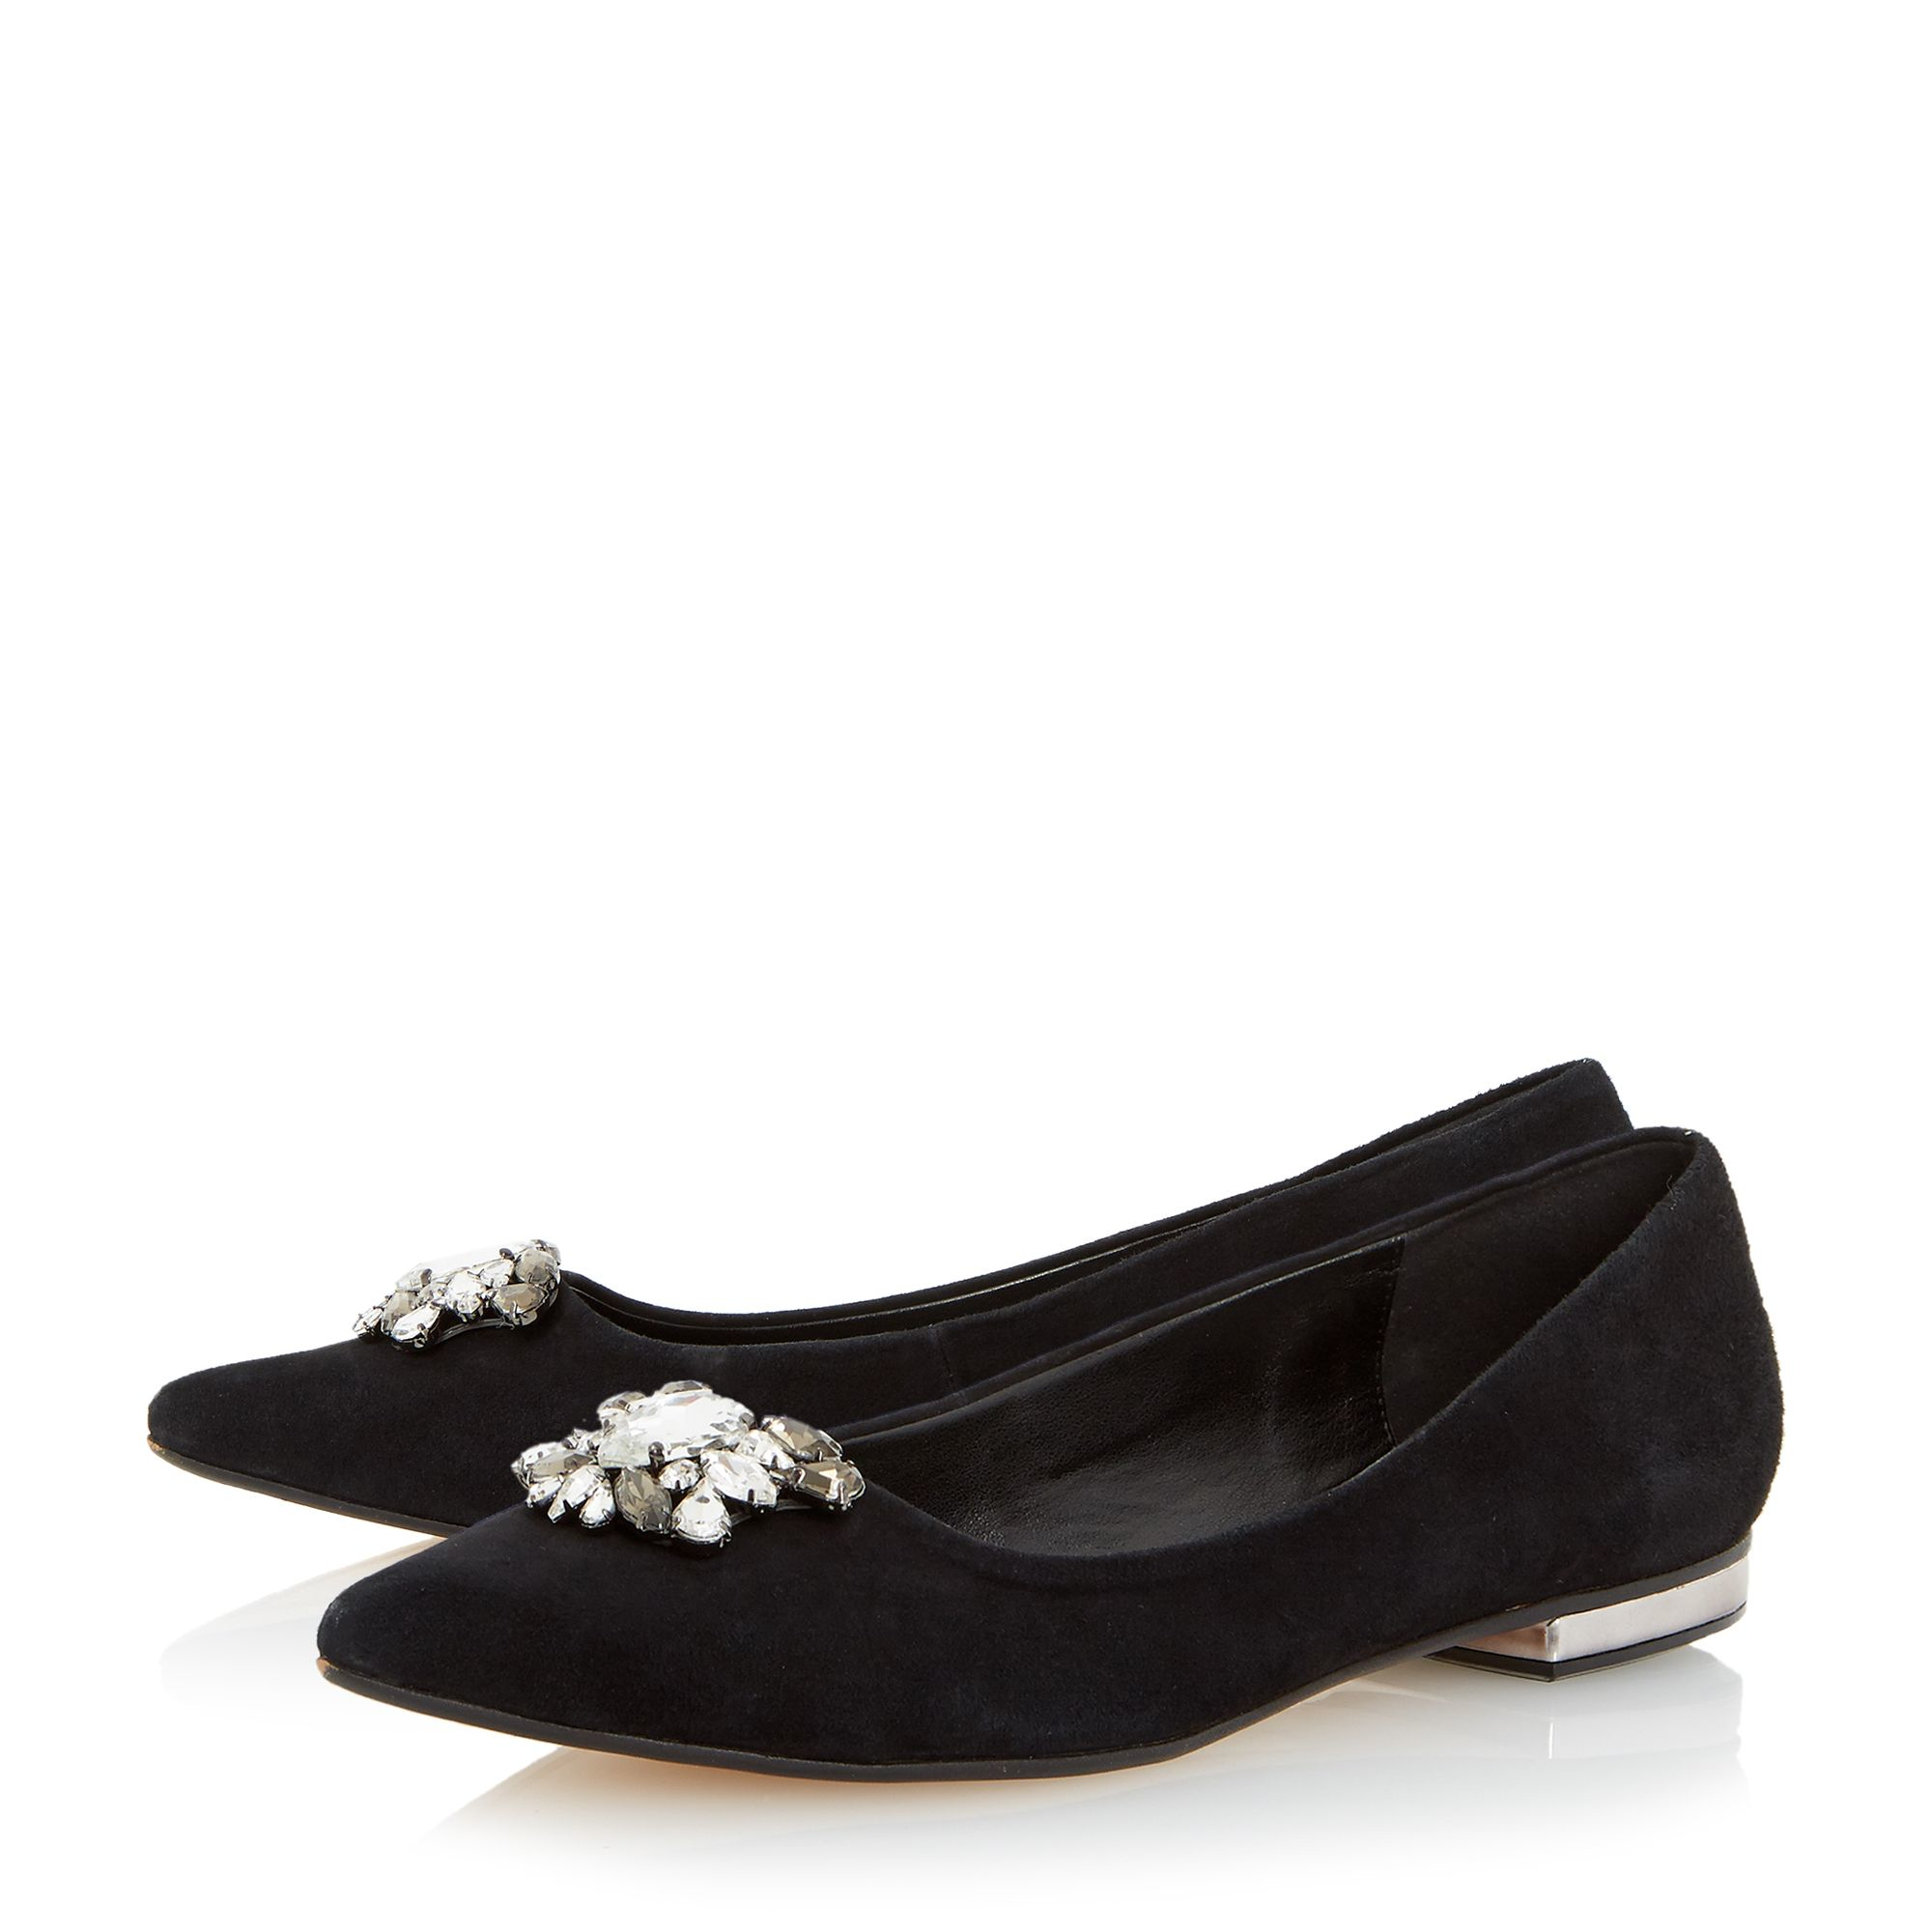 Dune Beaux Jewel Trim Pointed Toe Flat Shoes In Black   Lyst